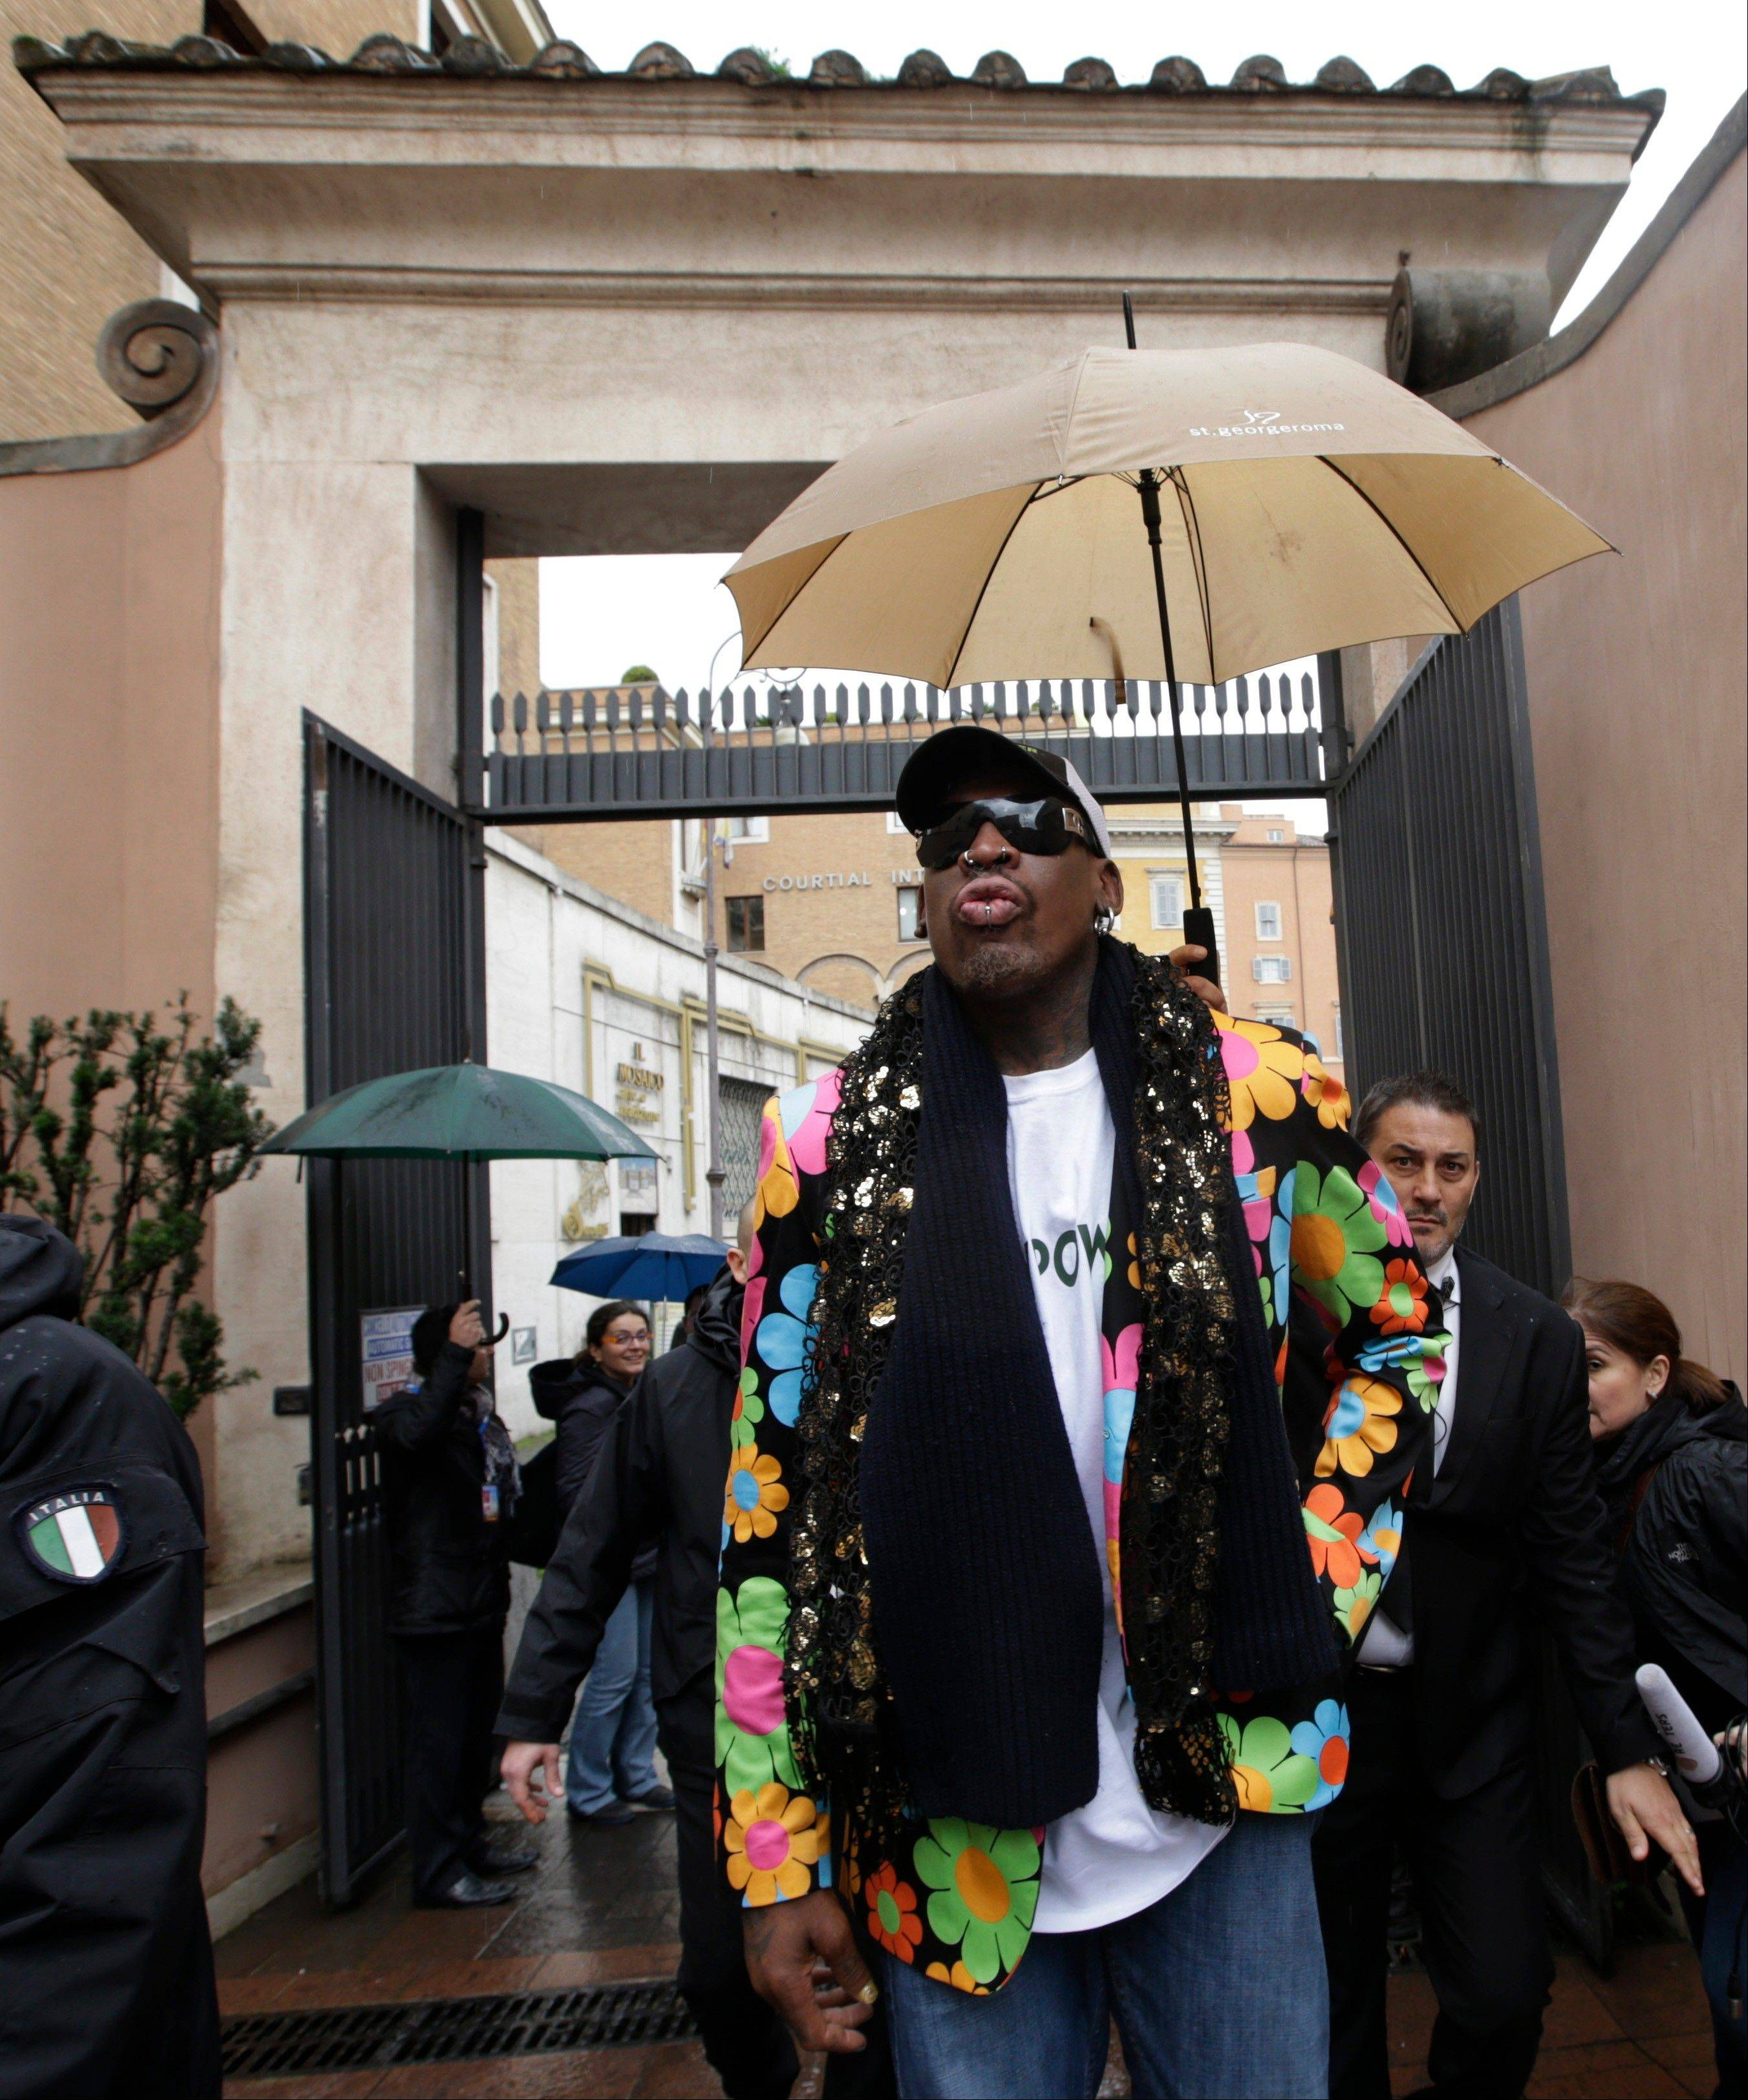 Former NBA star Dennis Rodman walks down a street near St. Peter's Square at the Vatican, Wednesday, March 13, 2013. Rodman is in Rome to promote the papal candidacy of Cardinal Peter Turkson of Ghana.